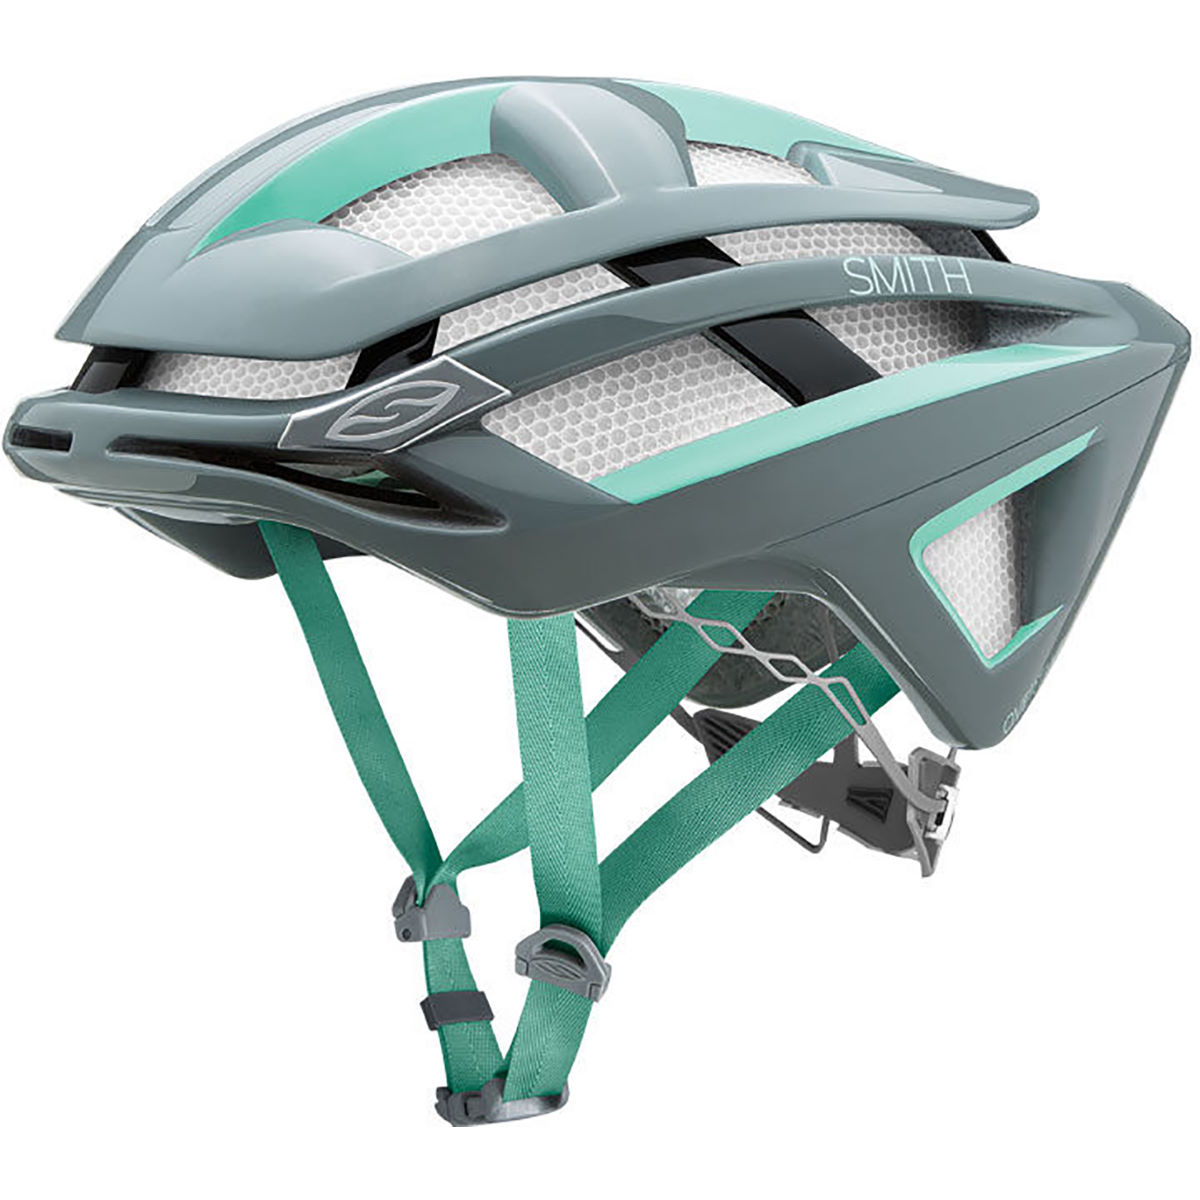 Casque Femme Smith Overtake (2016) - S 51-55cm Frost Mint Casques